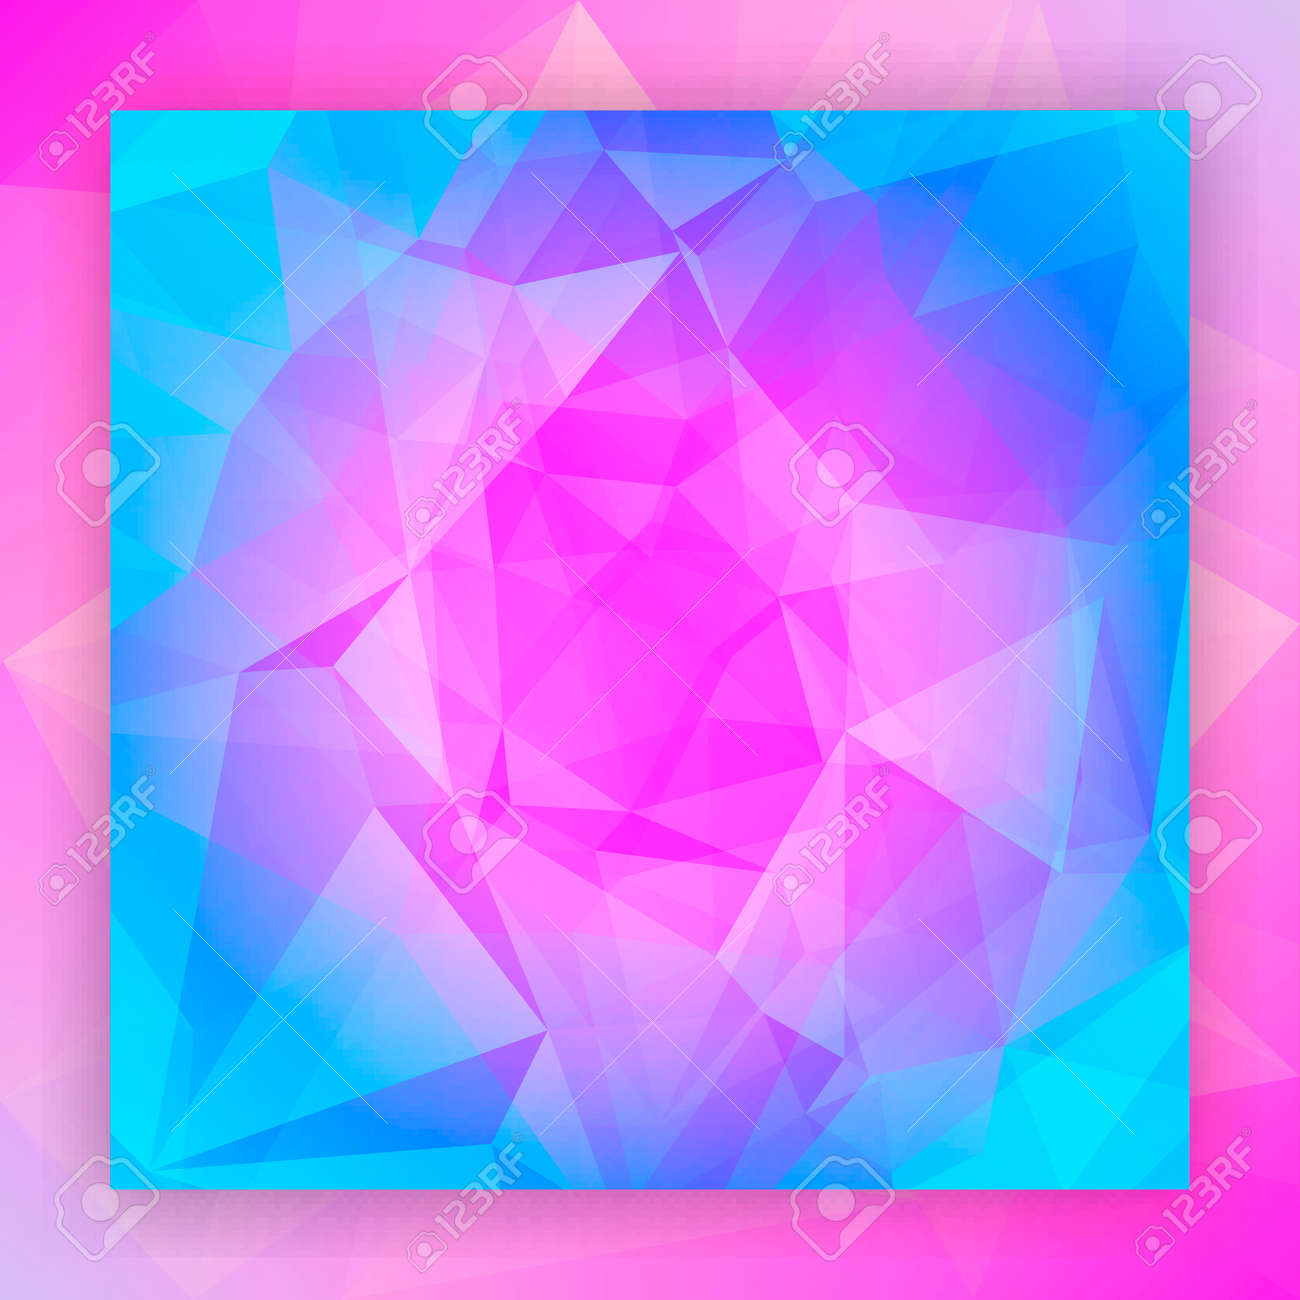 Abstract square triangle background  Tender smooth polygonal